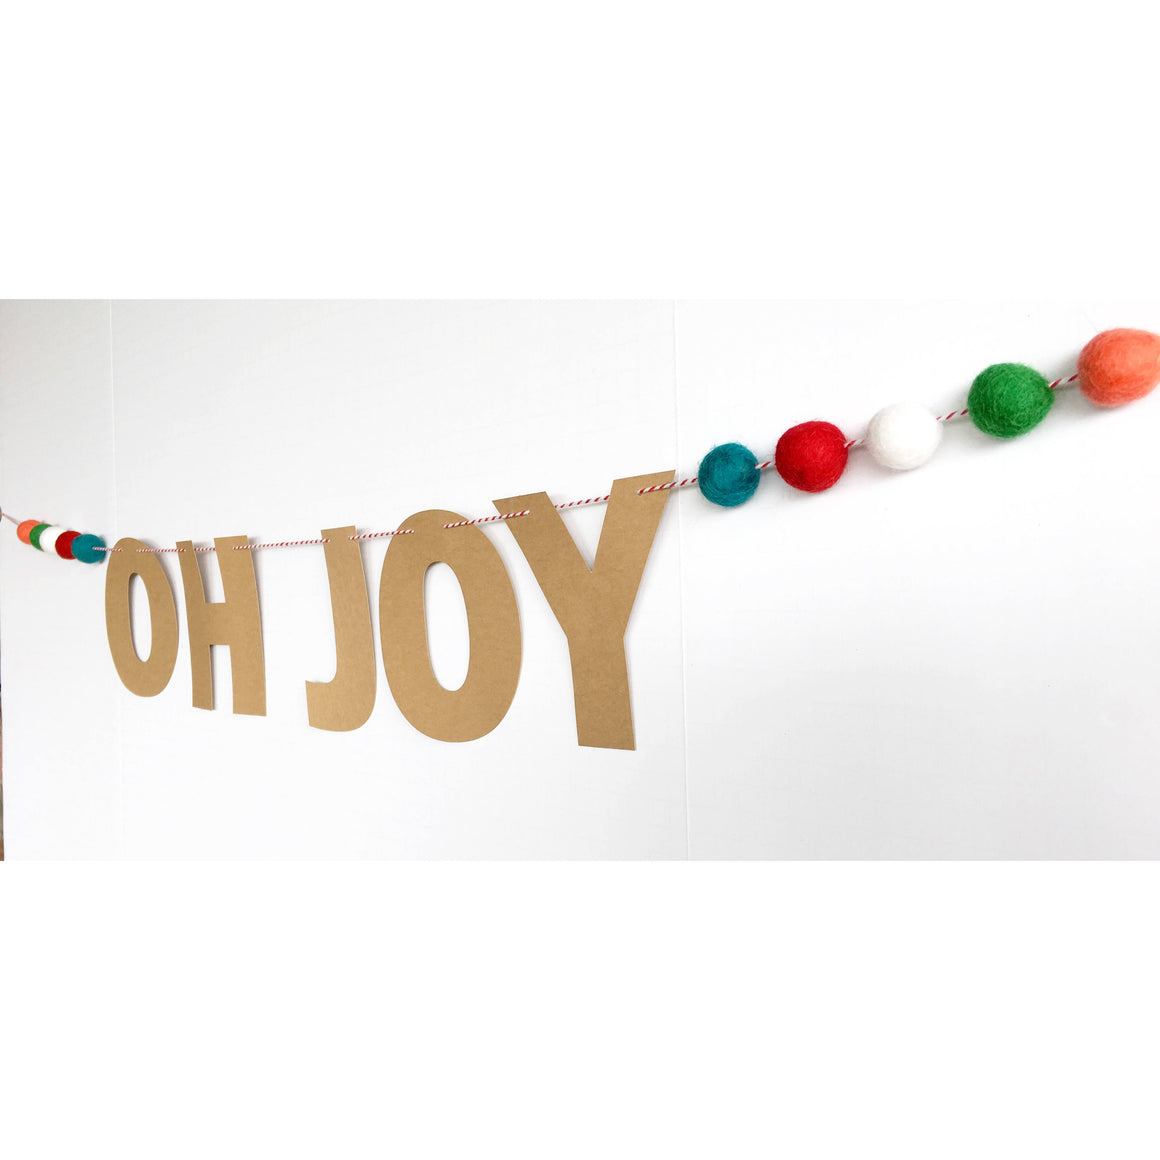 WORD MIX GARLAND - OH JOY POM